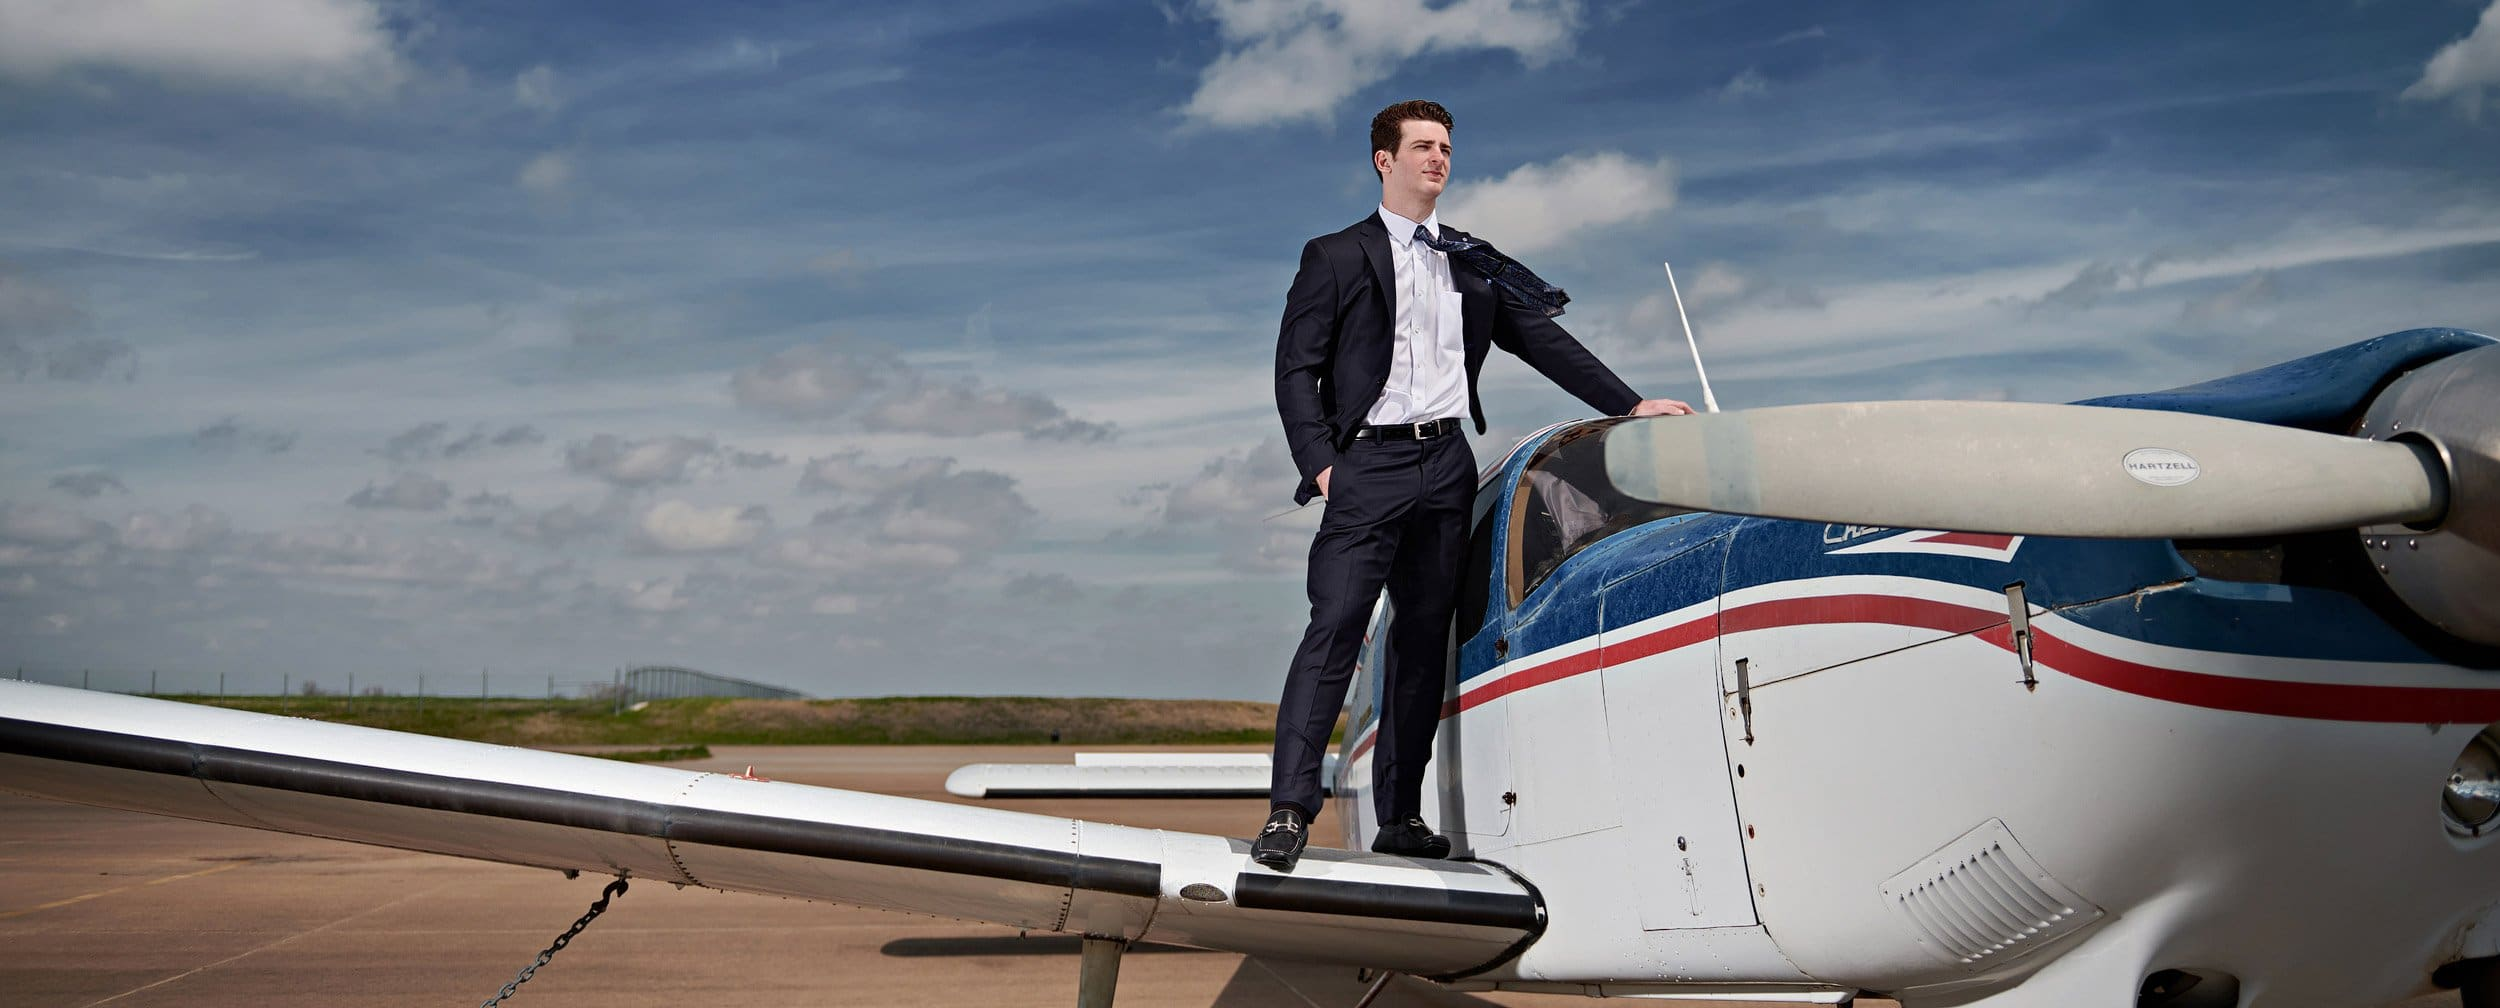 prosper senior photographer student on plane wing for portraits in suit banner